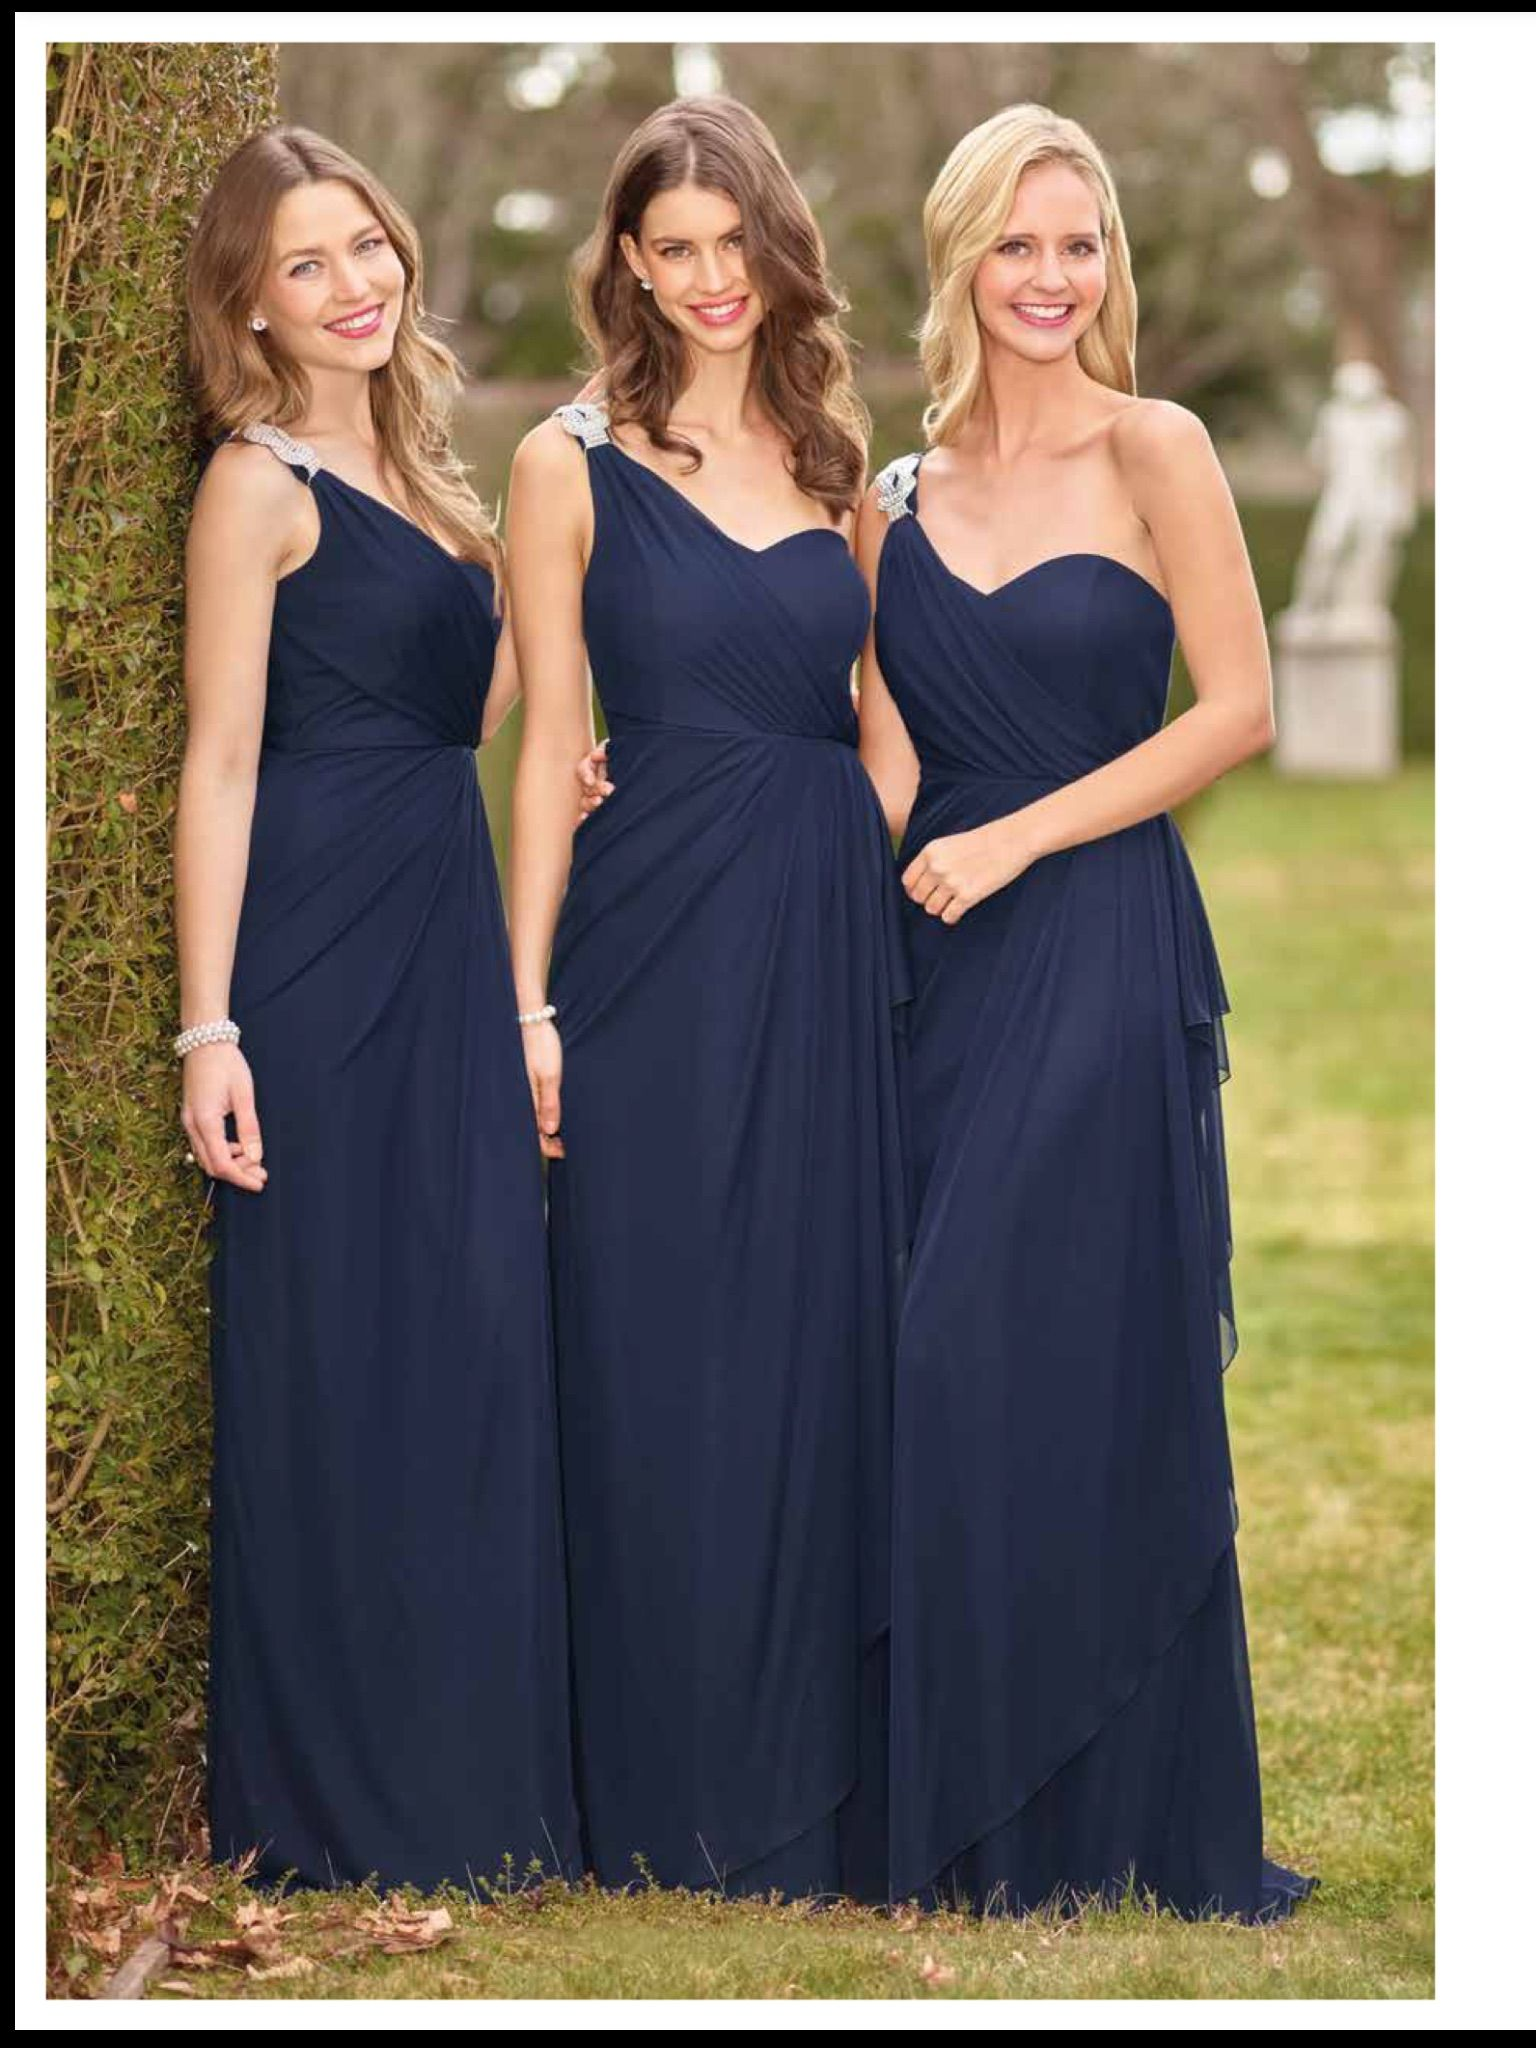 Kb5052 available for pre order shopping and fashion a beautiful full length dress by designer mr k perfect for bridesmaid dresses one shoulder style featuring an embellished strap ombrellifo Choice Image